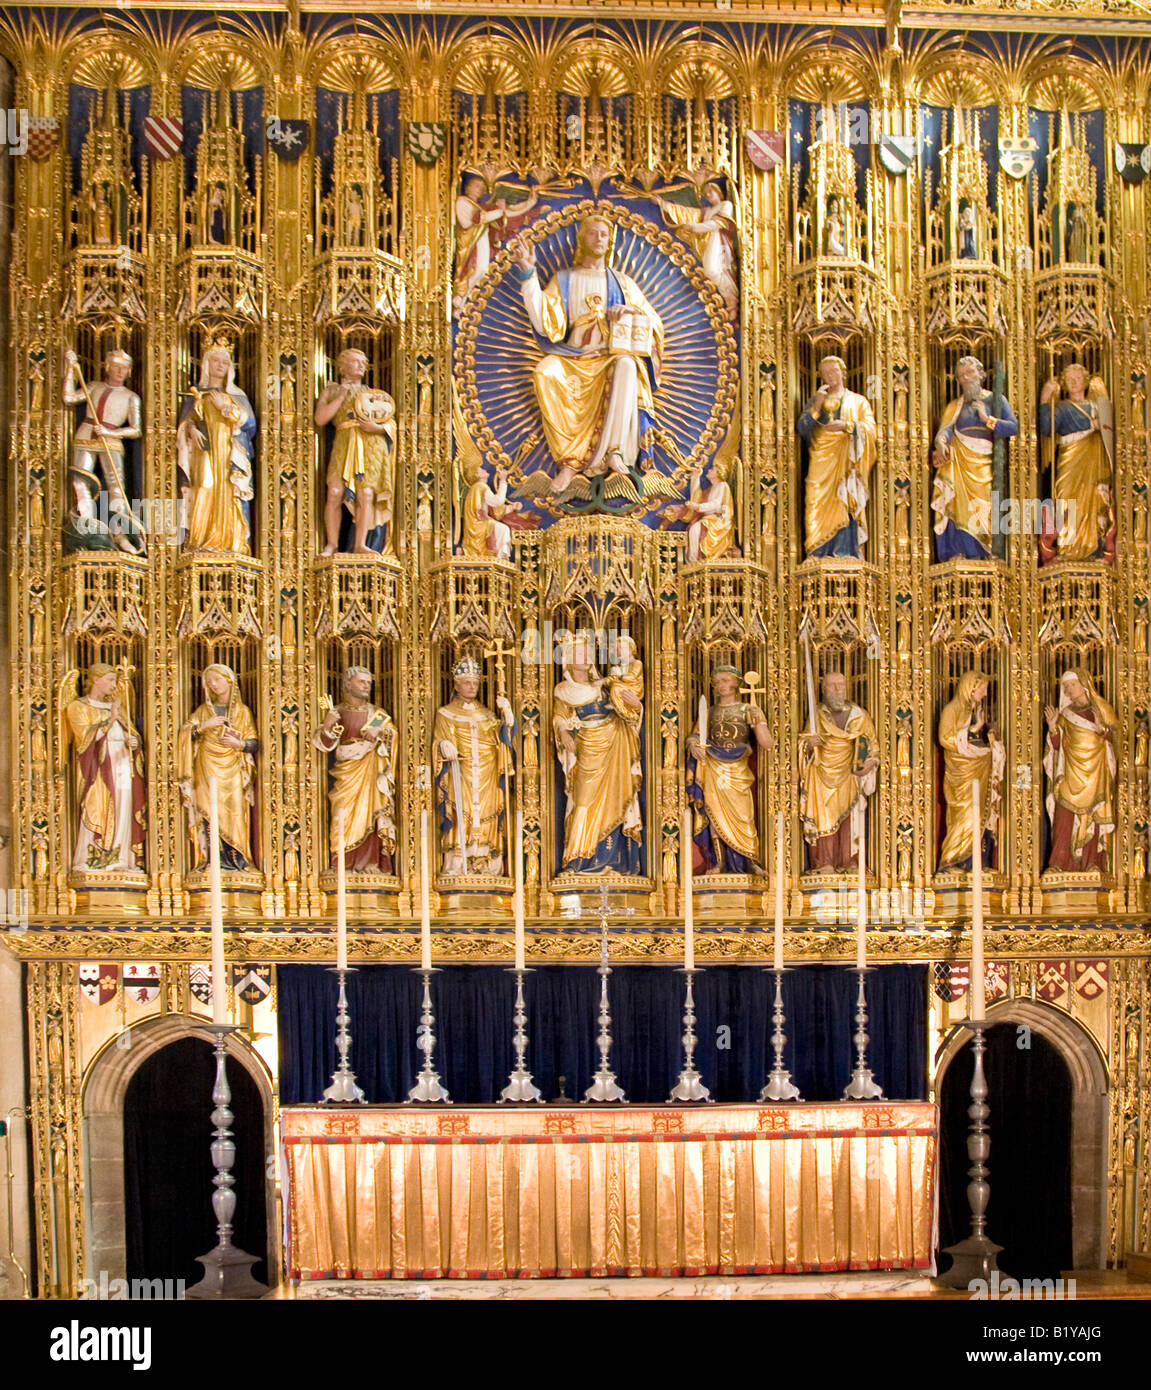 The guilded altar screen at Wymondham Abbey Norfolk England - Stock Image